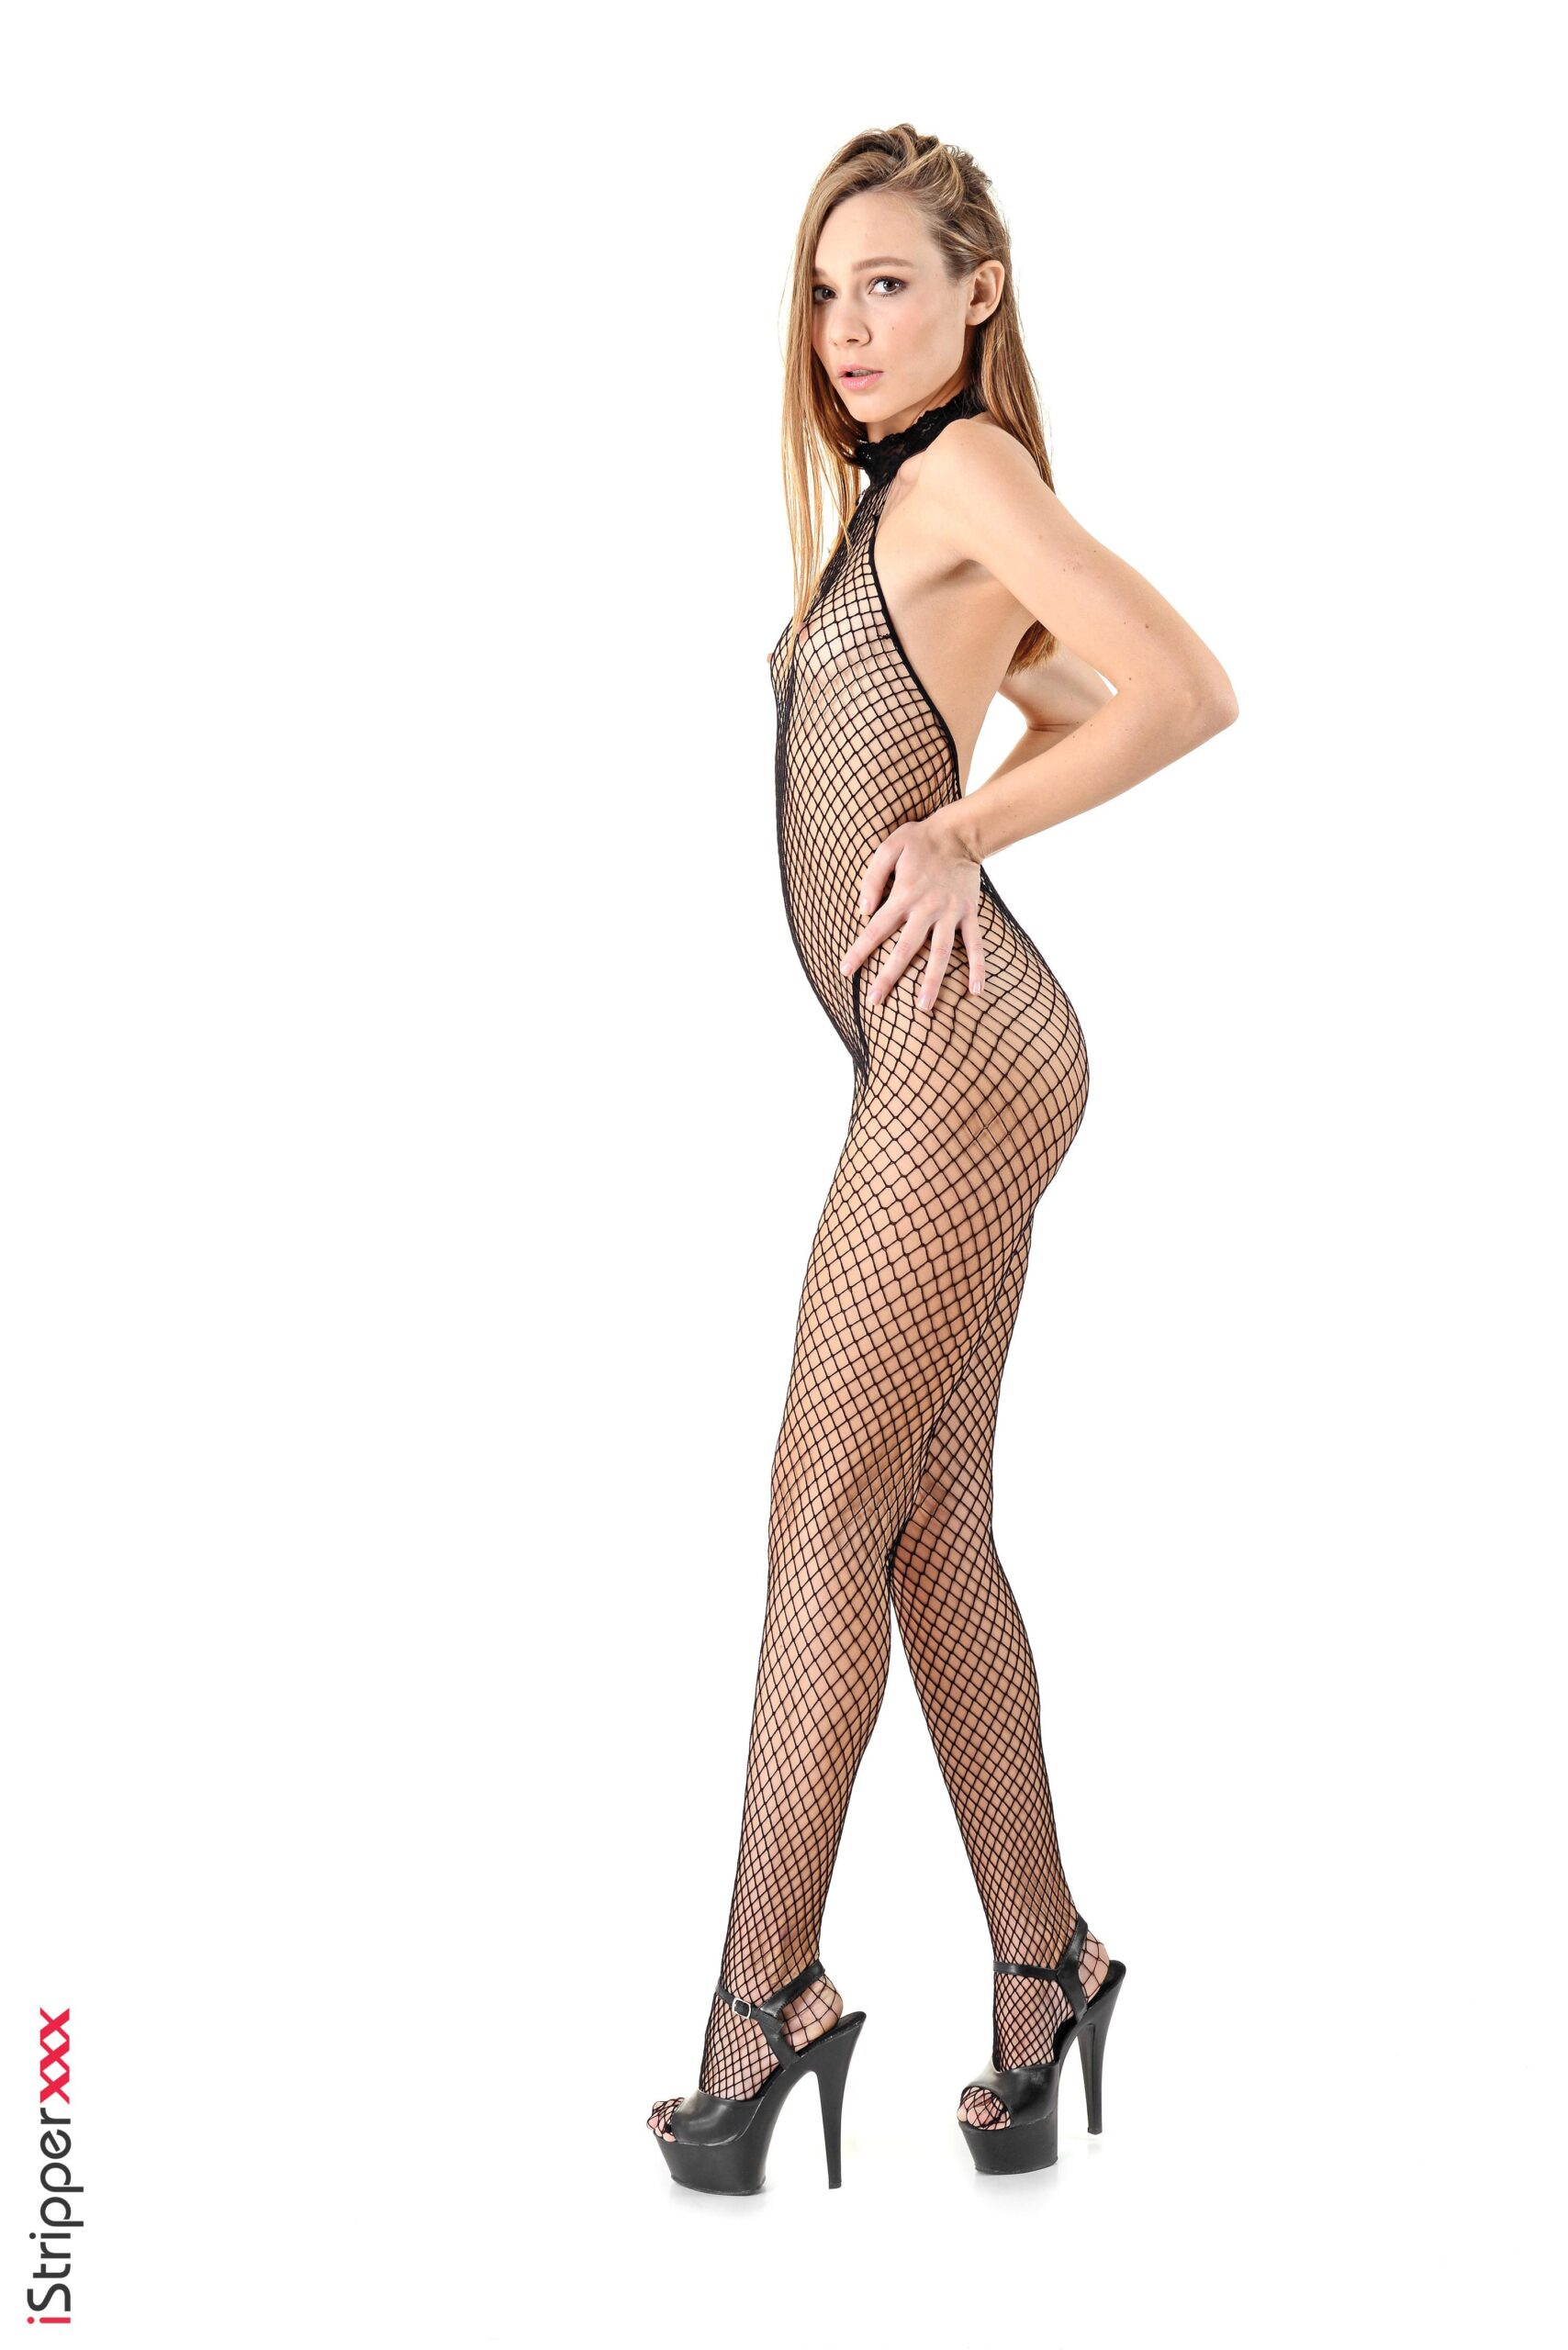 Sexy girl Mira fellates on a toy working her nude body free of a mesh bodystocking